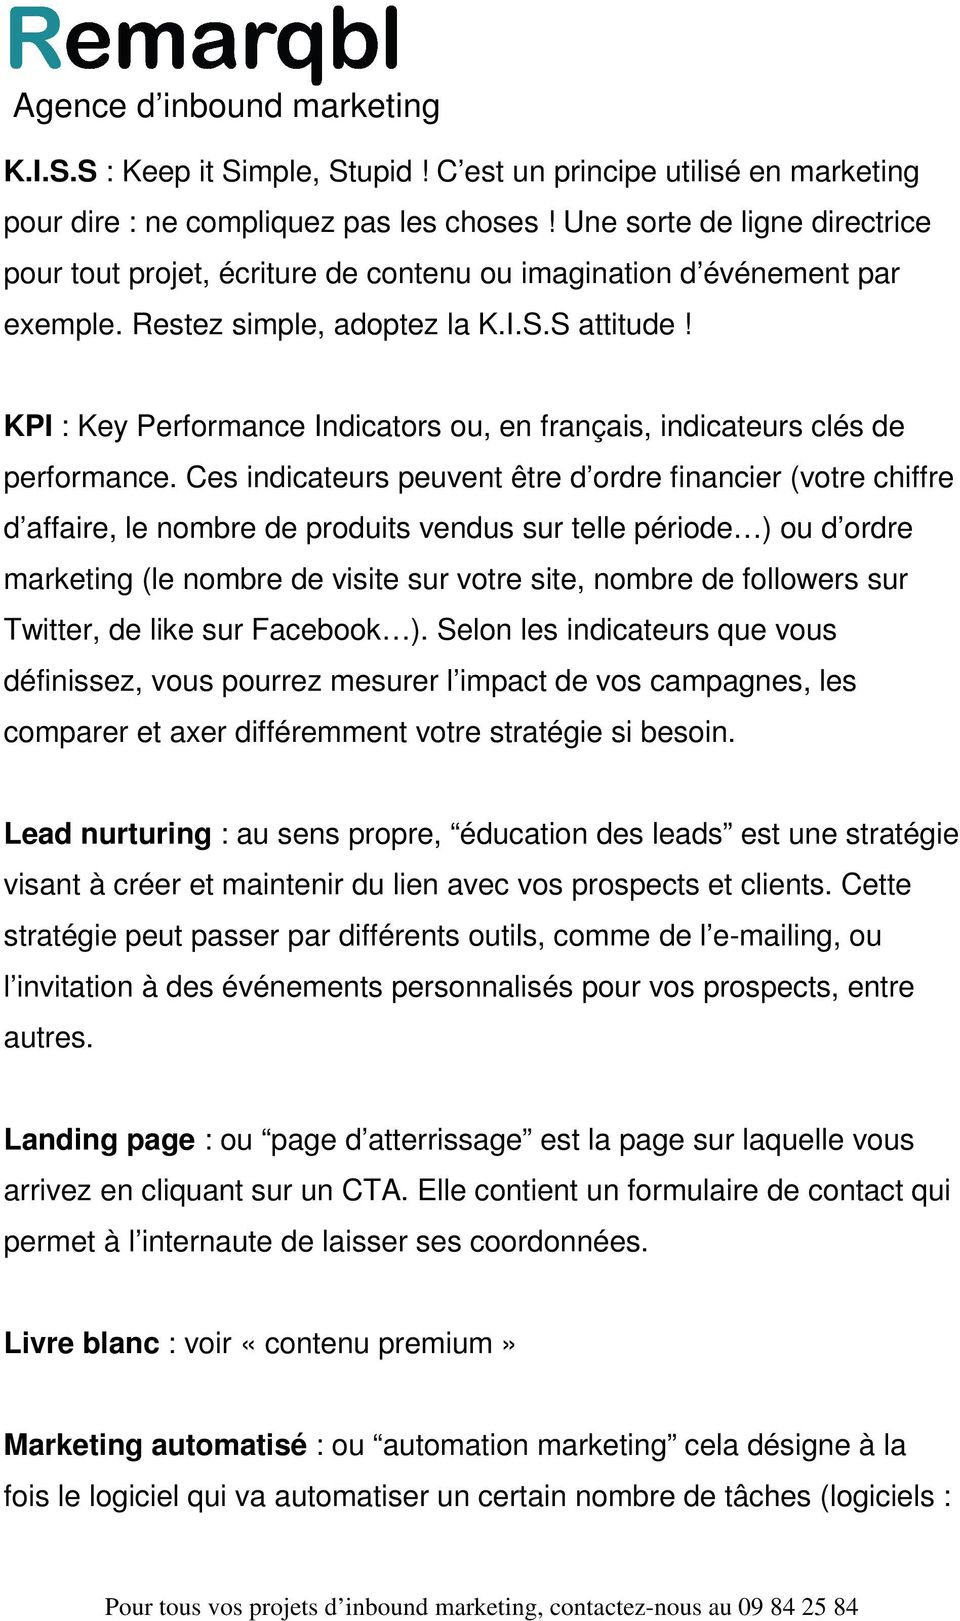 KPI : Key Performance Indicators ou, en français, indicateurs clés de performance.